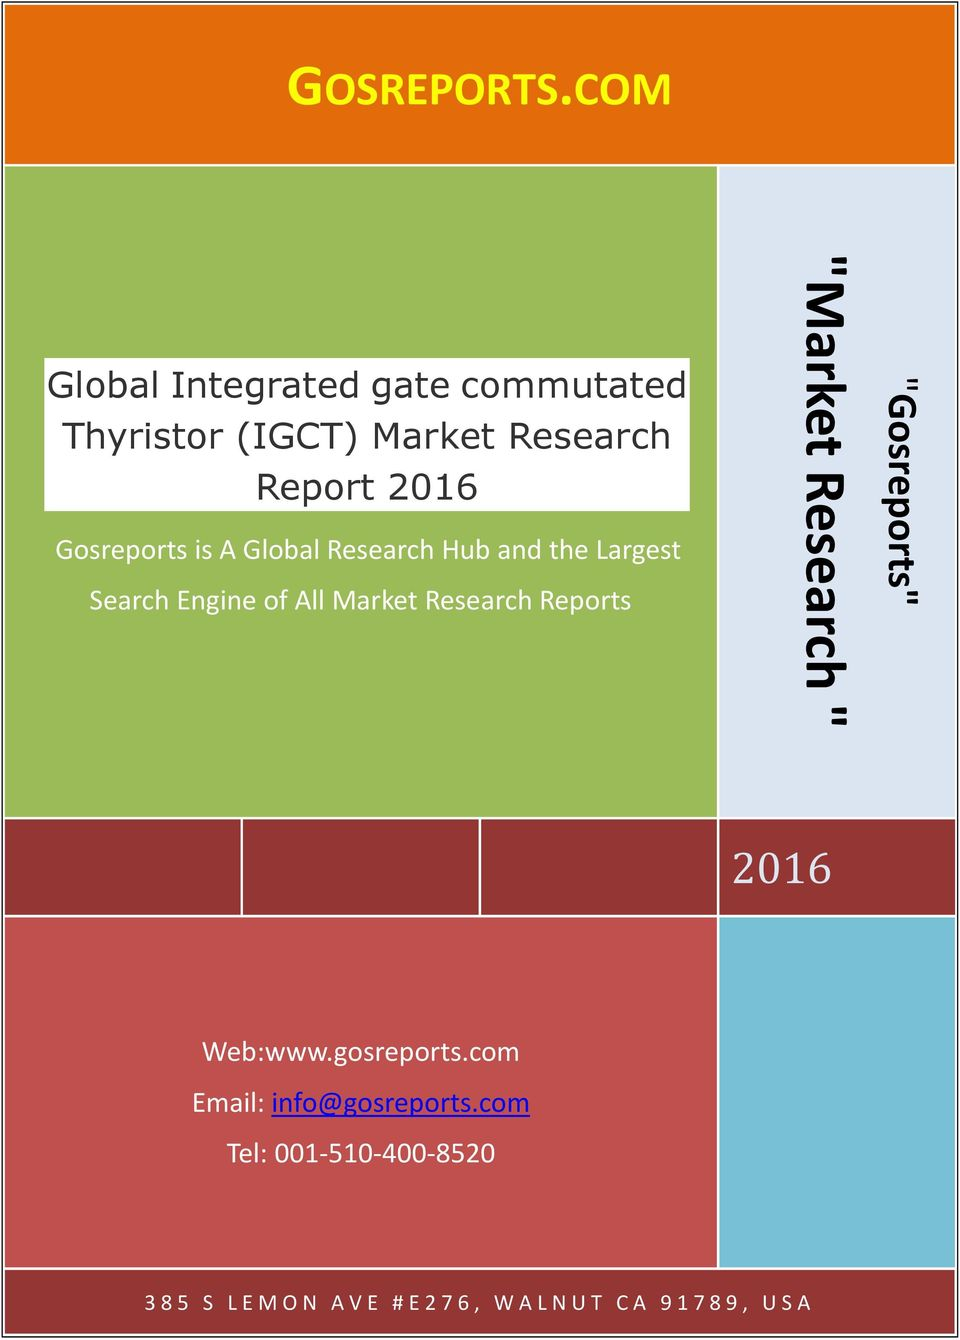 Gosreports is A Global Research Hub and the Largest Search Engine of All Market Research